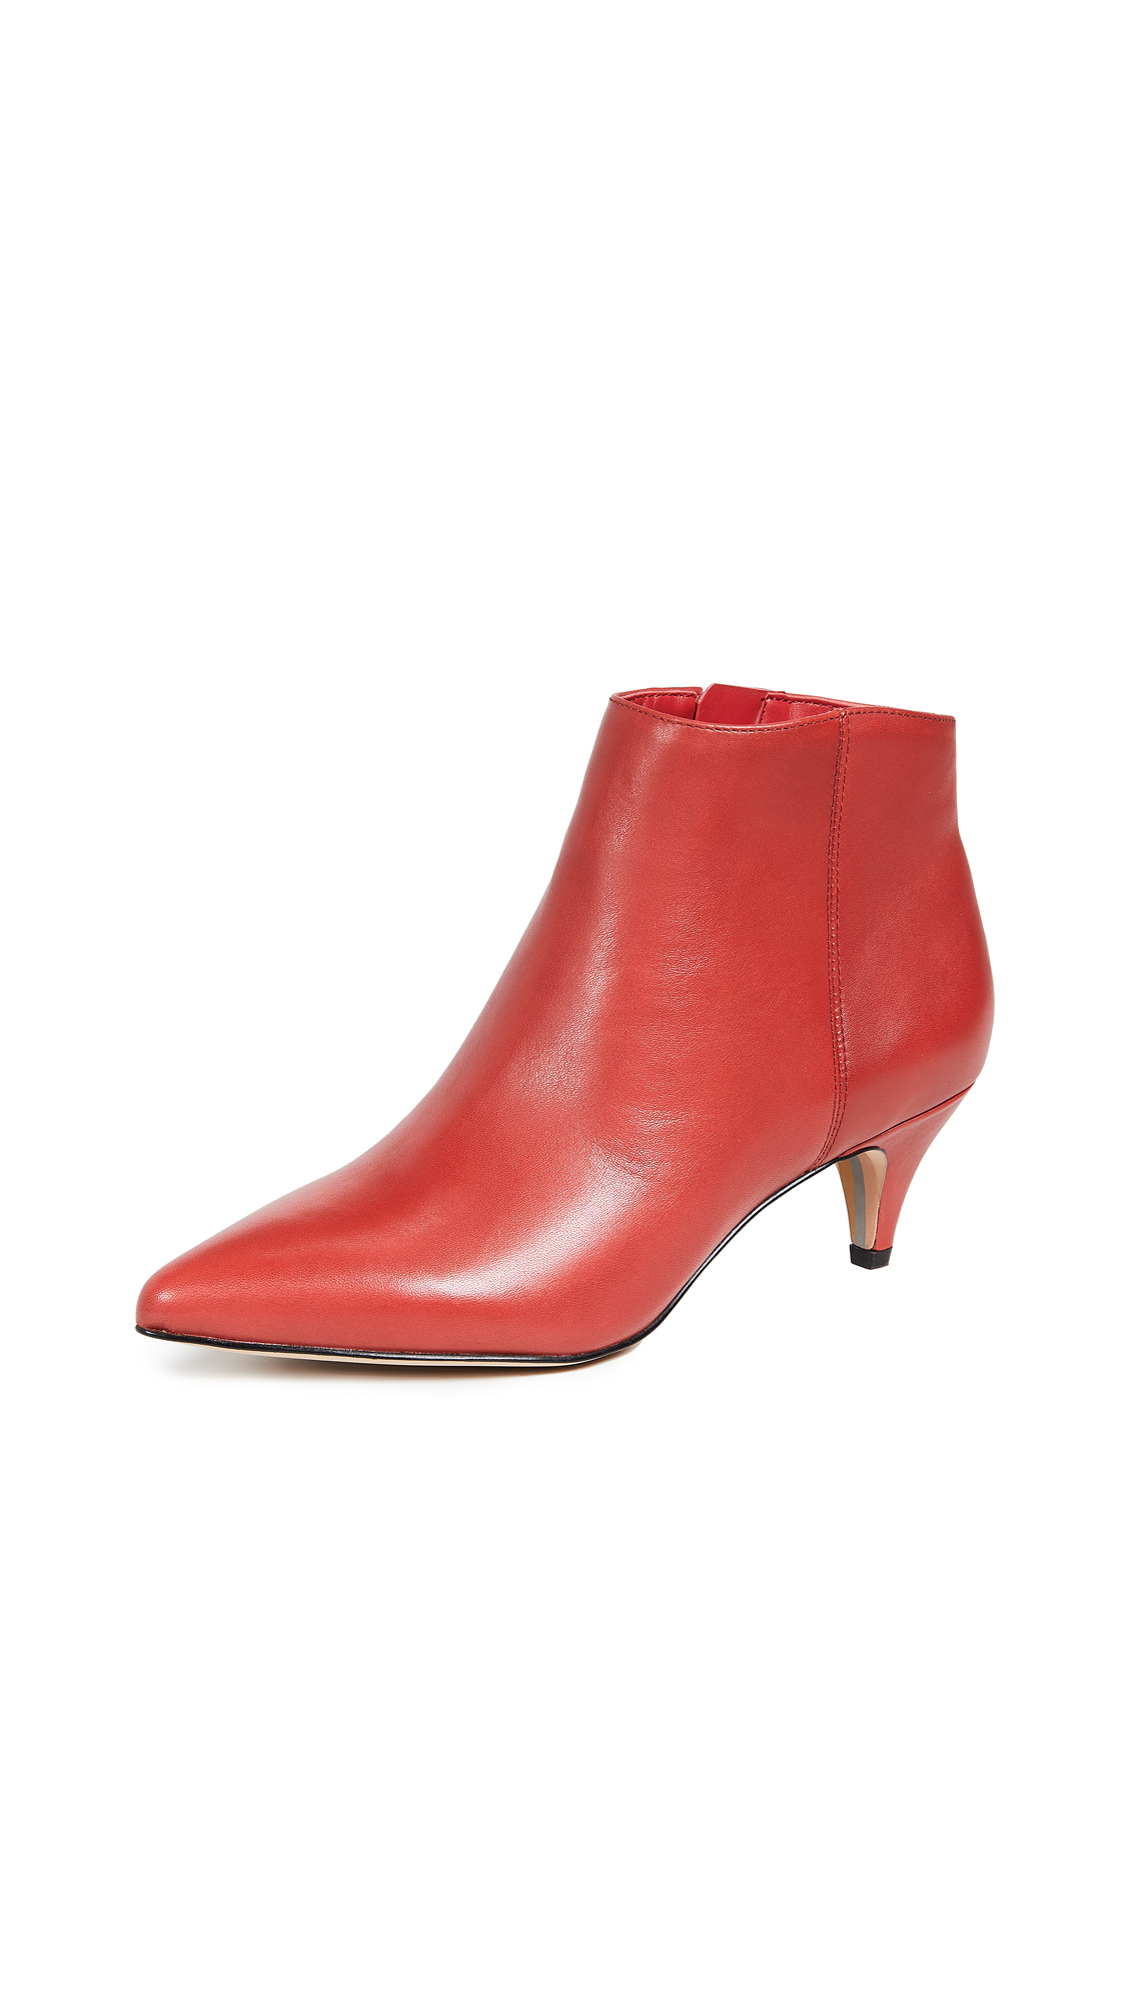 Sam Edelman Kinzey Booties - Deep Red